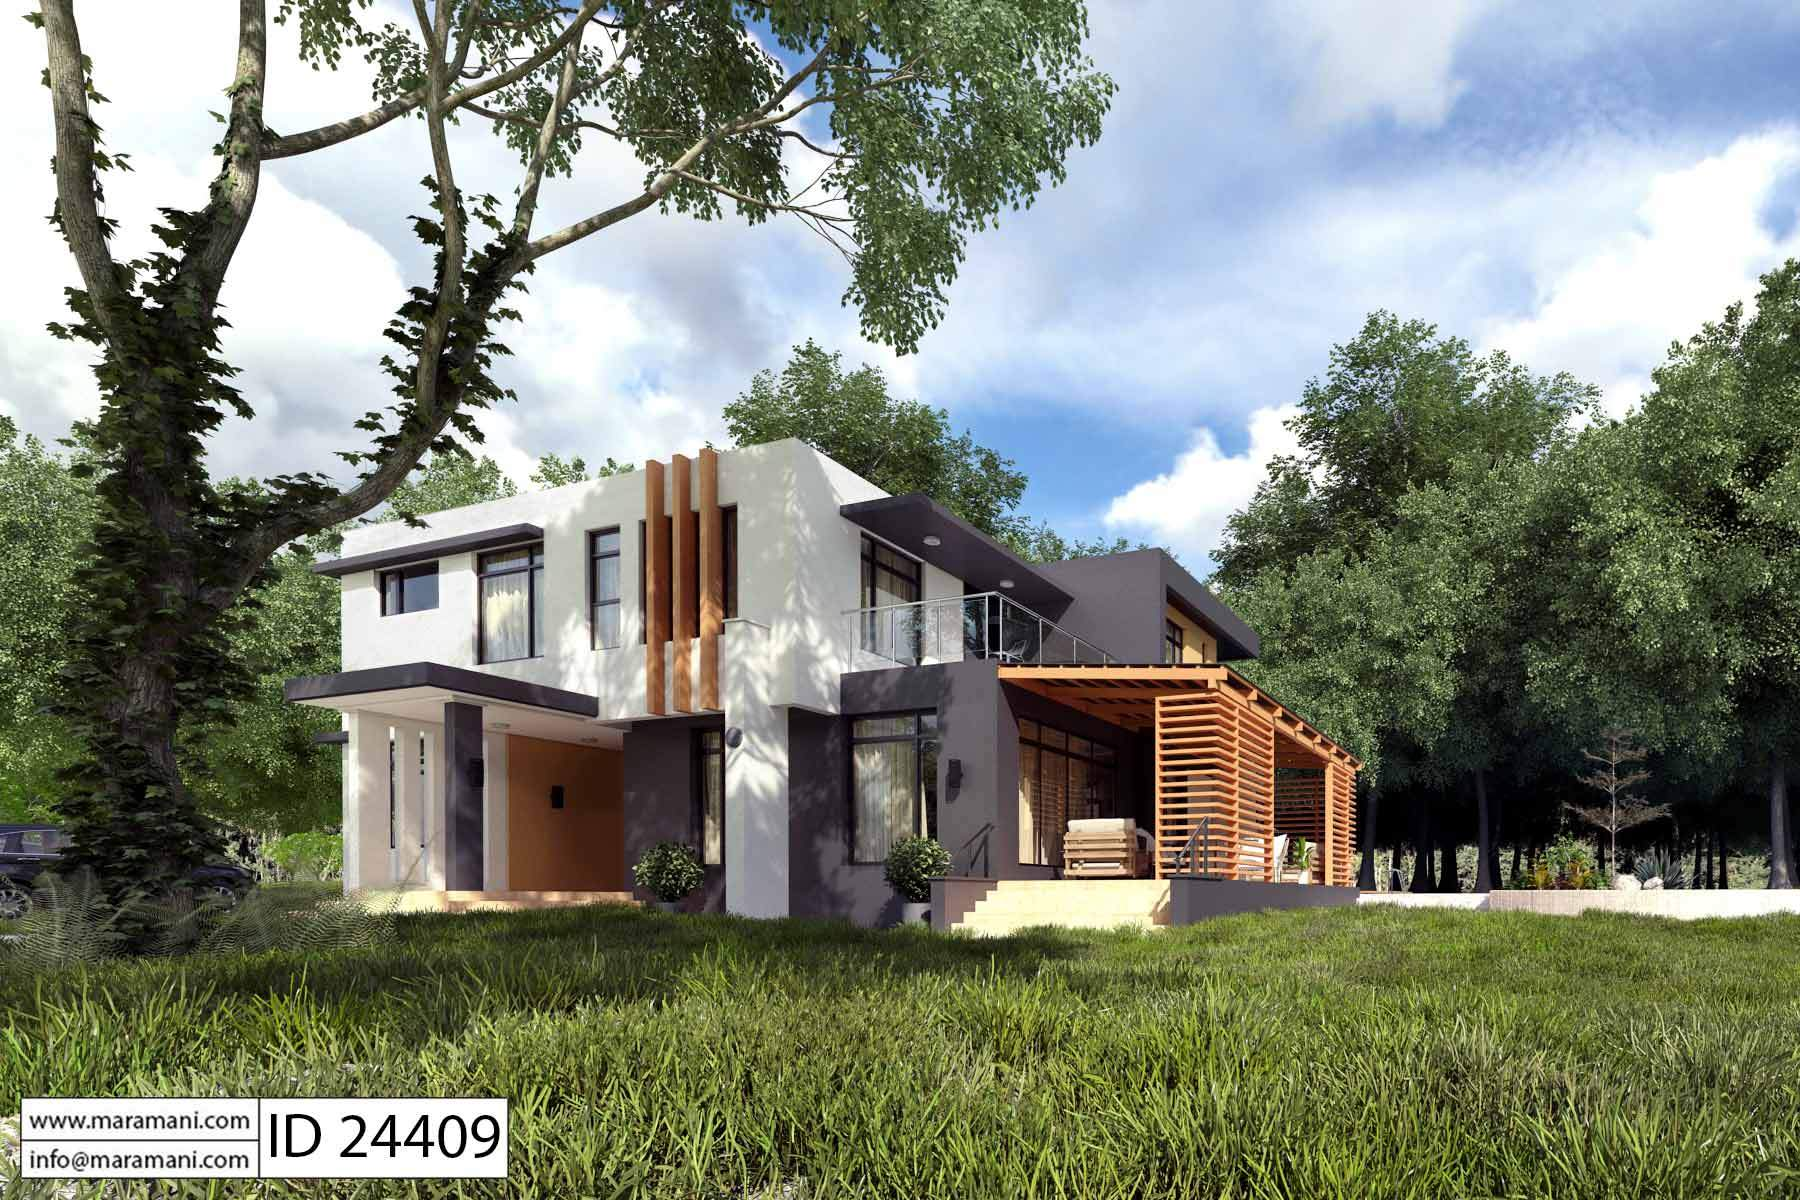 Four Bedroom House Plans Duet Bedroom House Plan - Four 4 bedroom houses